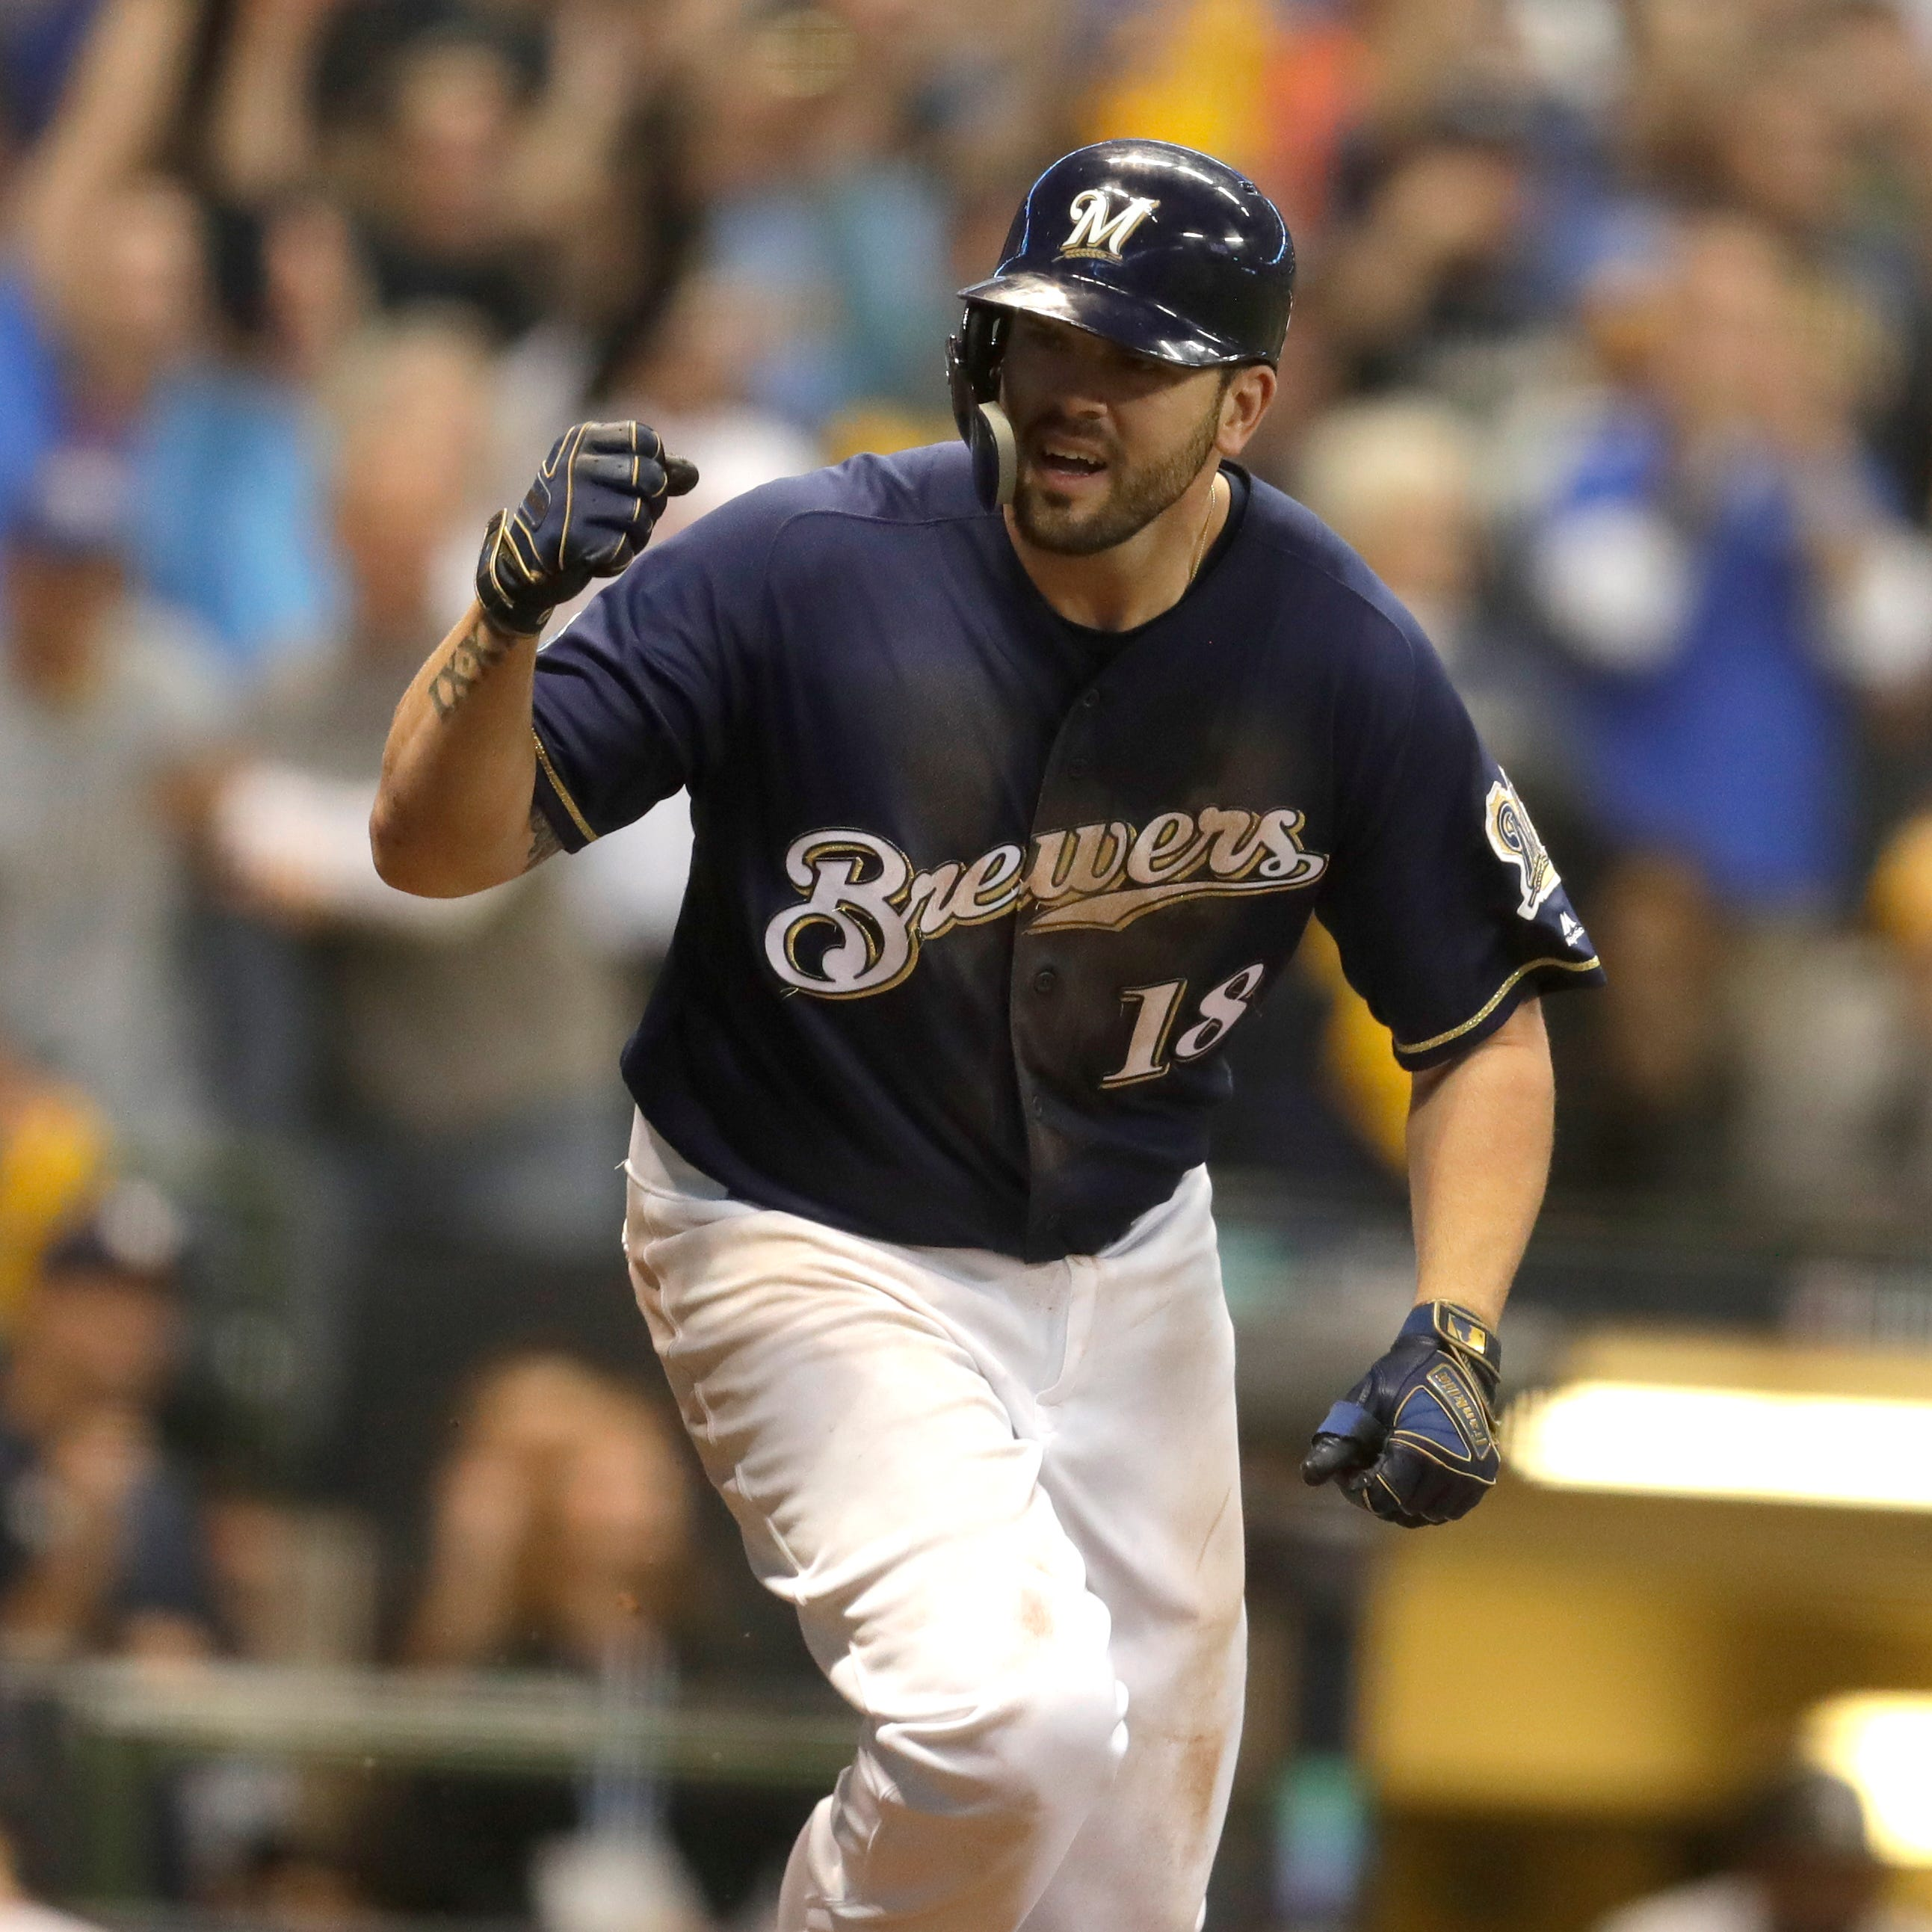 Brewers' plan is to move Mike Moustakas to second base and keep Travis Shaw at third base